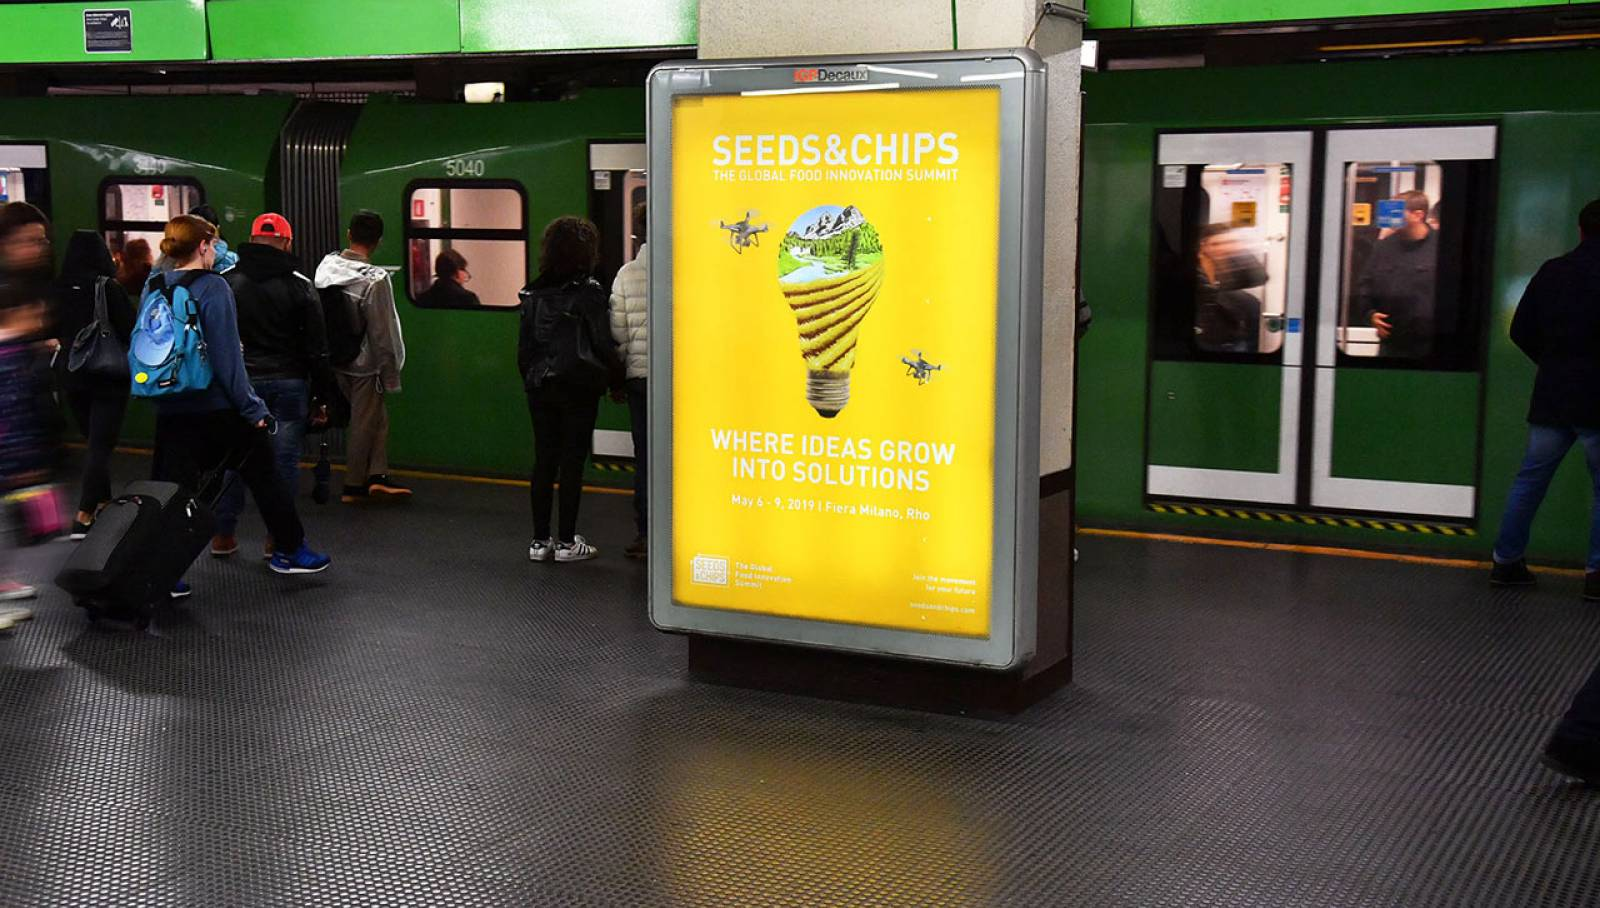 Underground OOH advertising in Milan Portrait Coverage Network IGPDecaux for Seeds&Chips